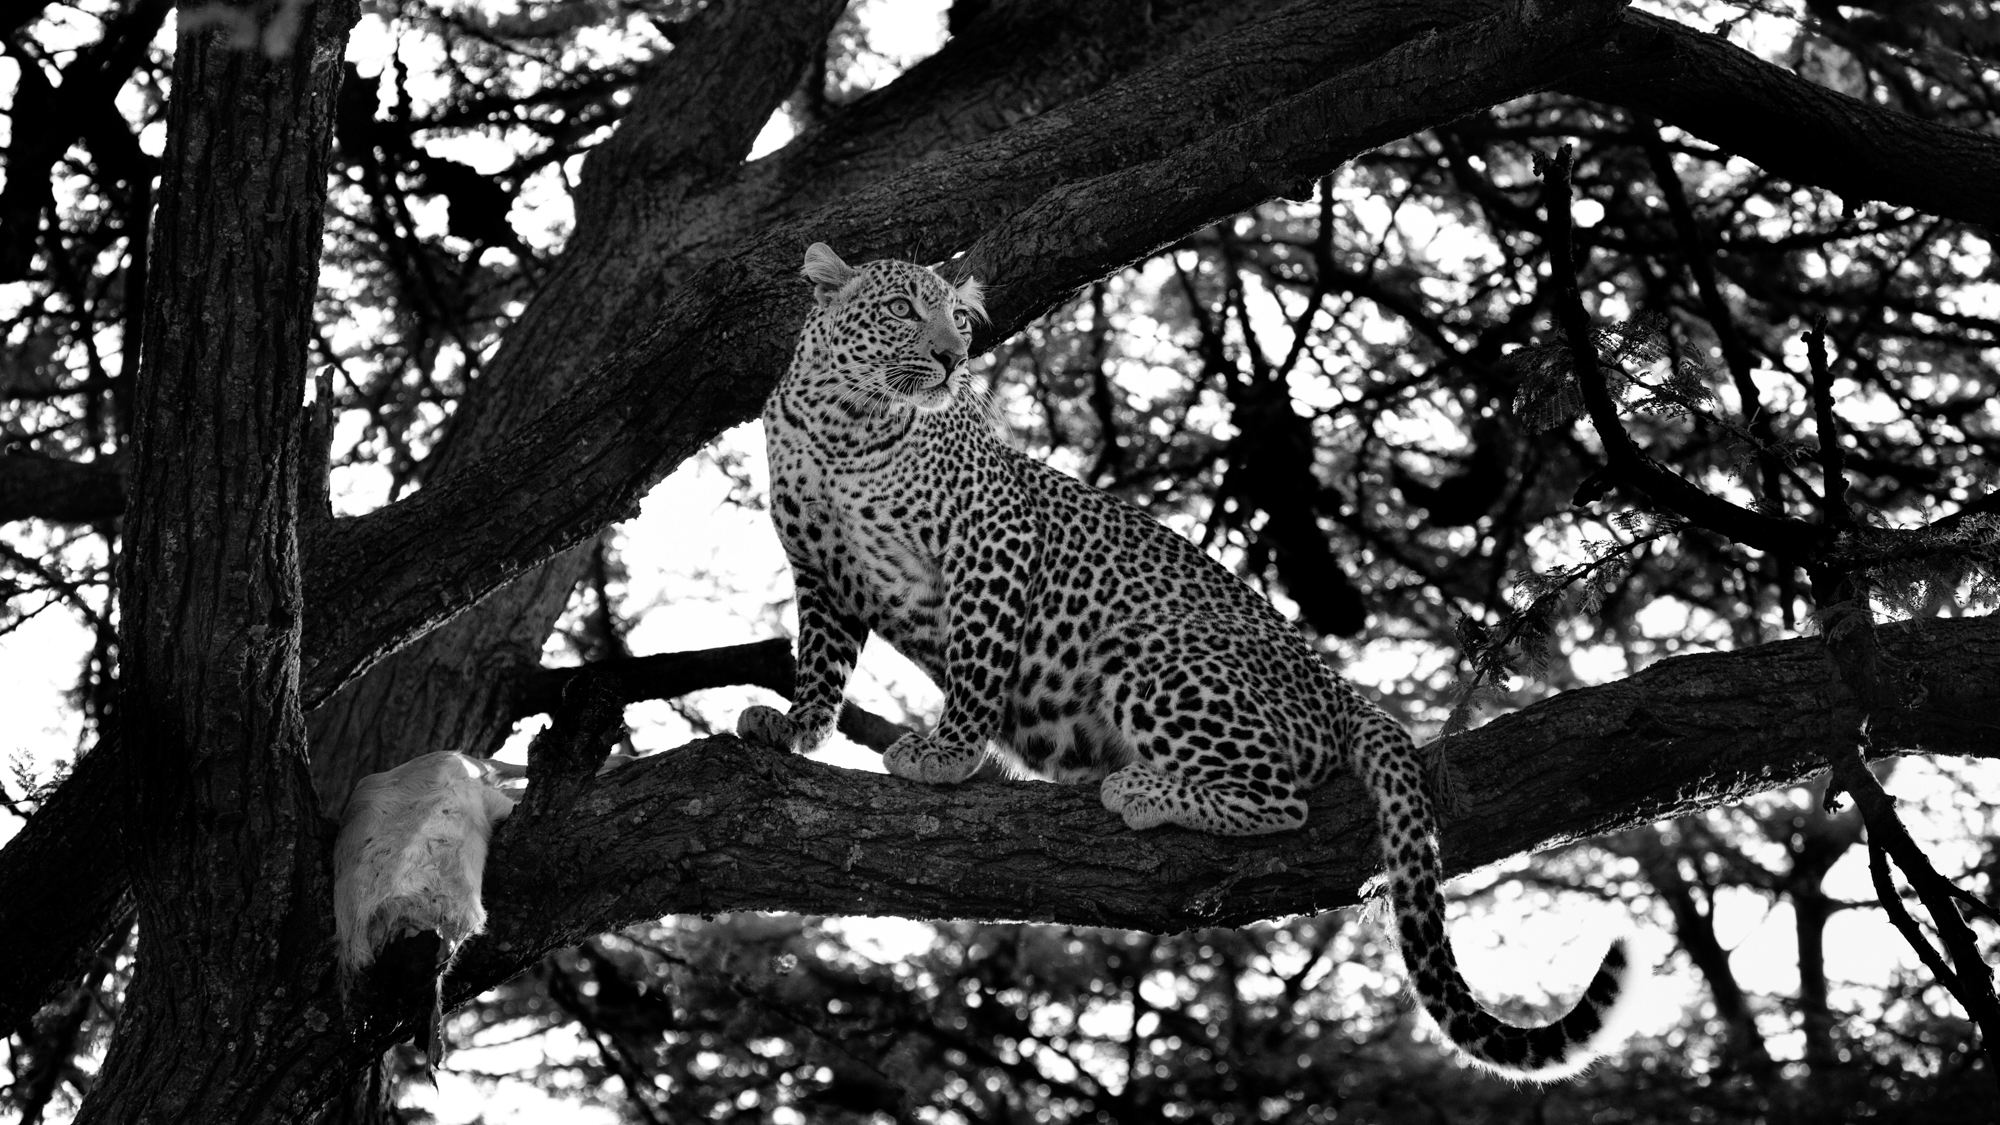 A leopard in a tree guarding the carcass of an Impala